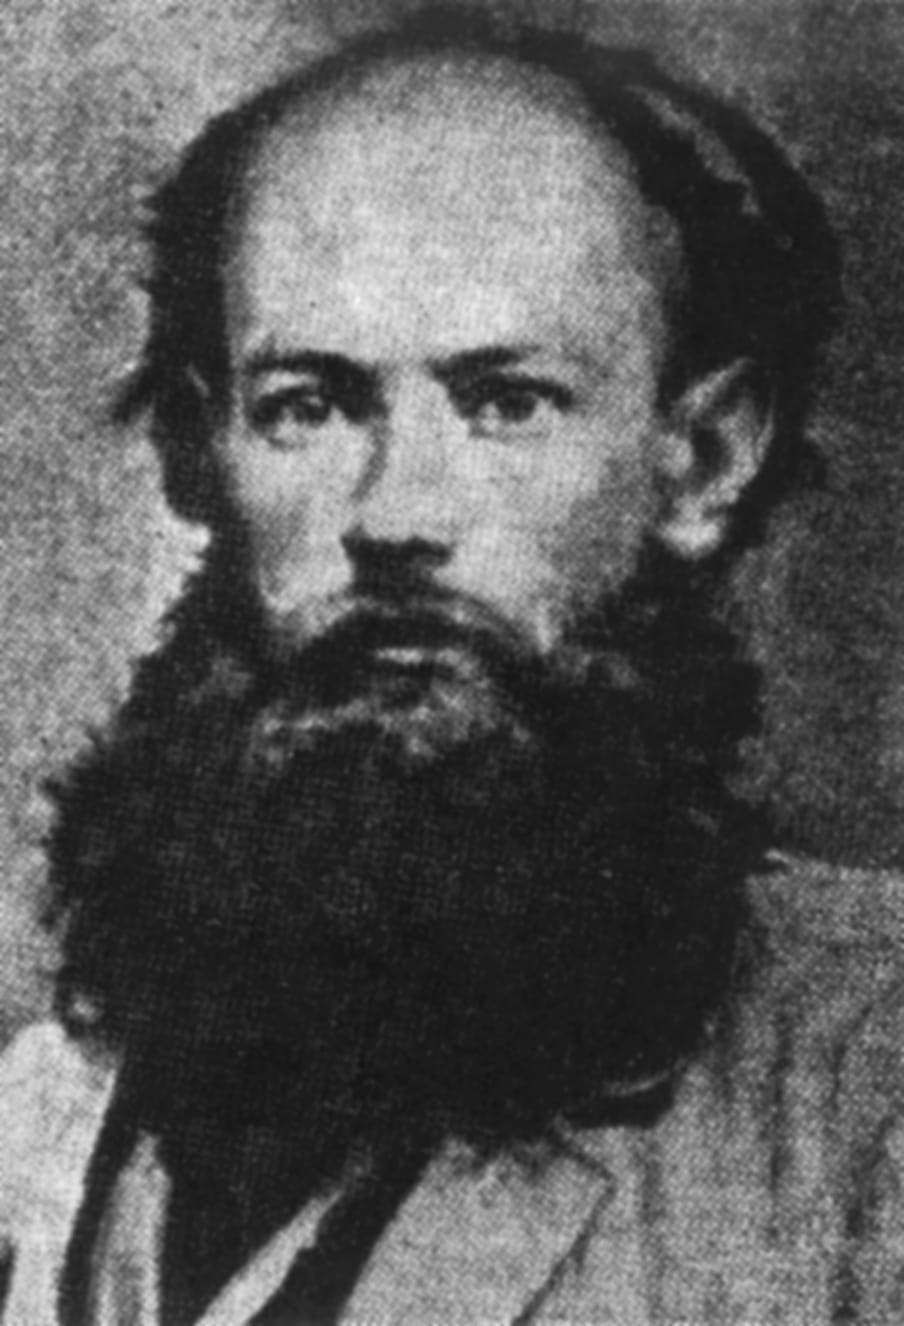 Black and white portrait of a man with a beard.